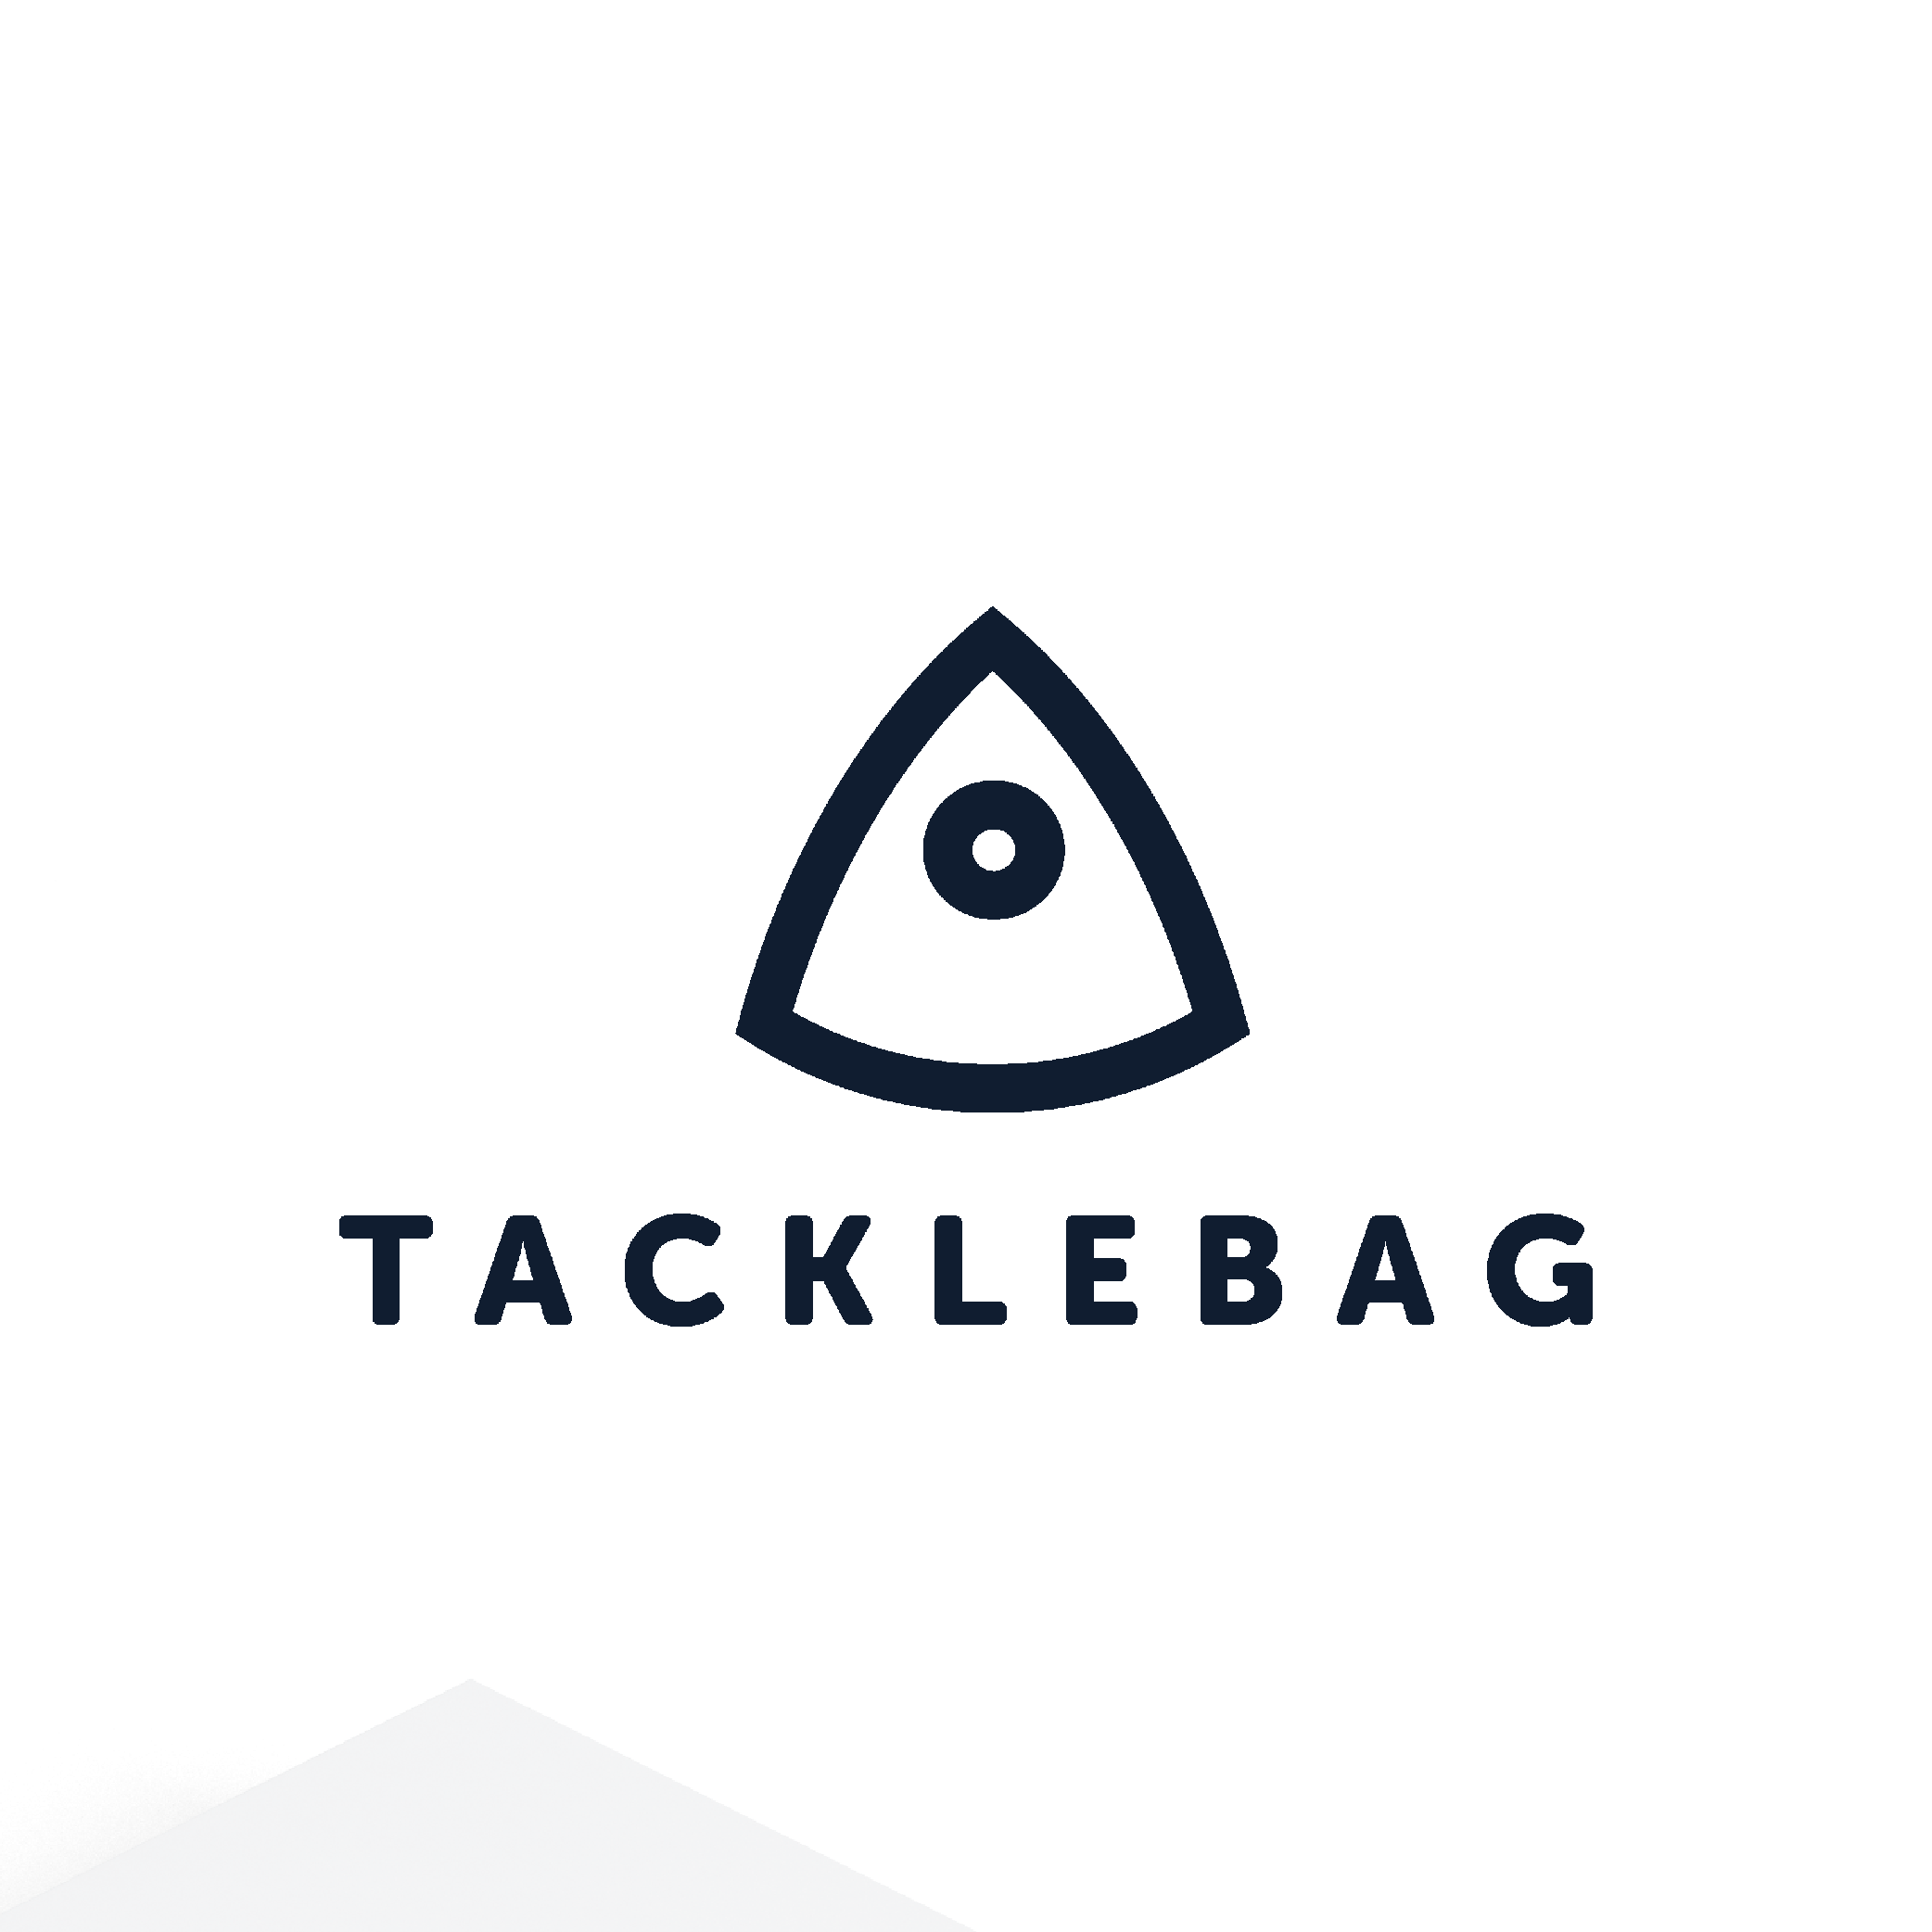 Tacklebag